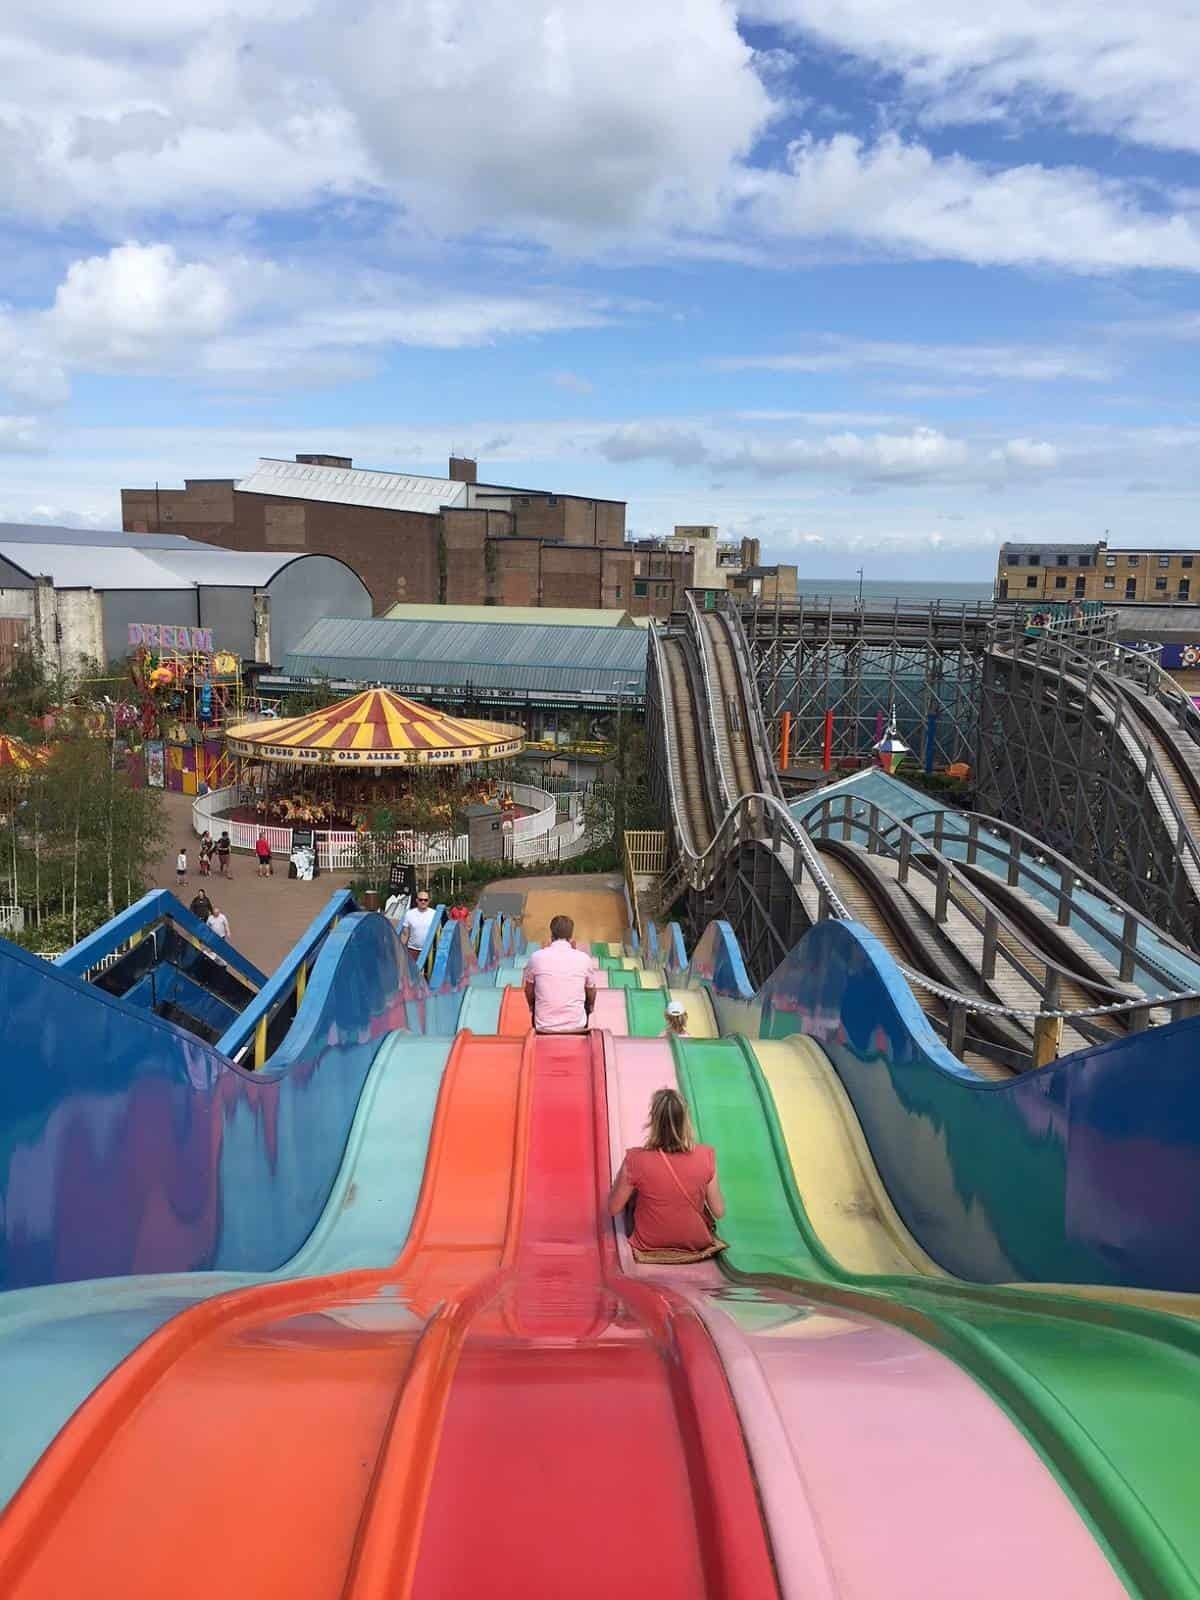 Born Slippy ride at Dreamland Margate